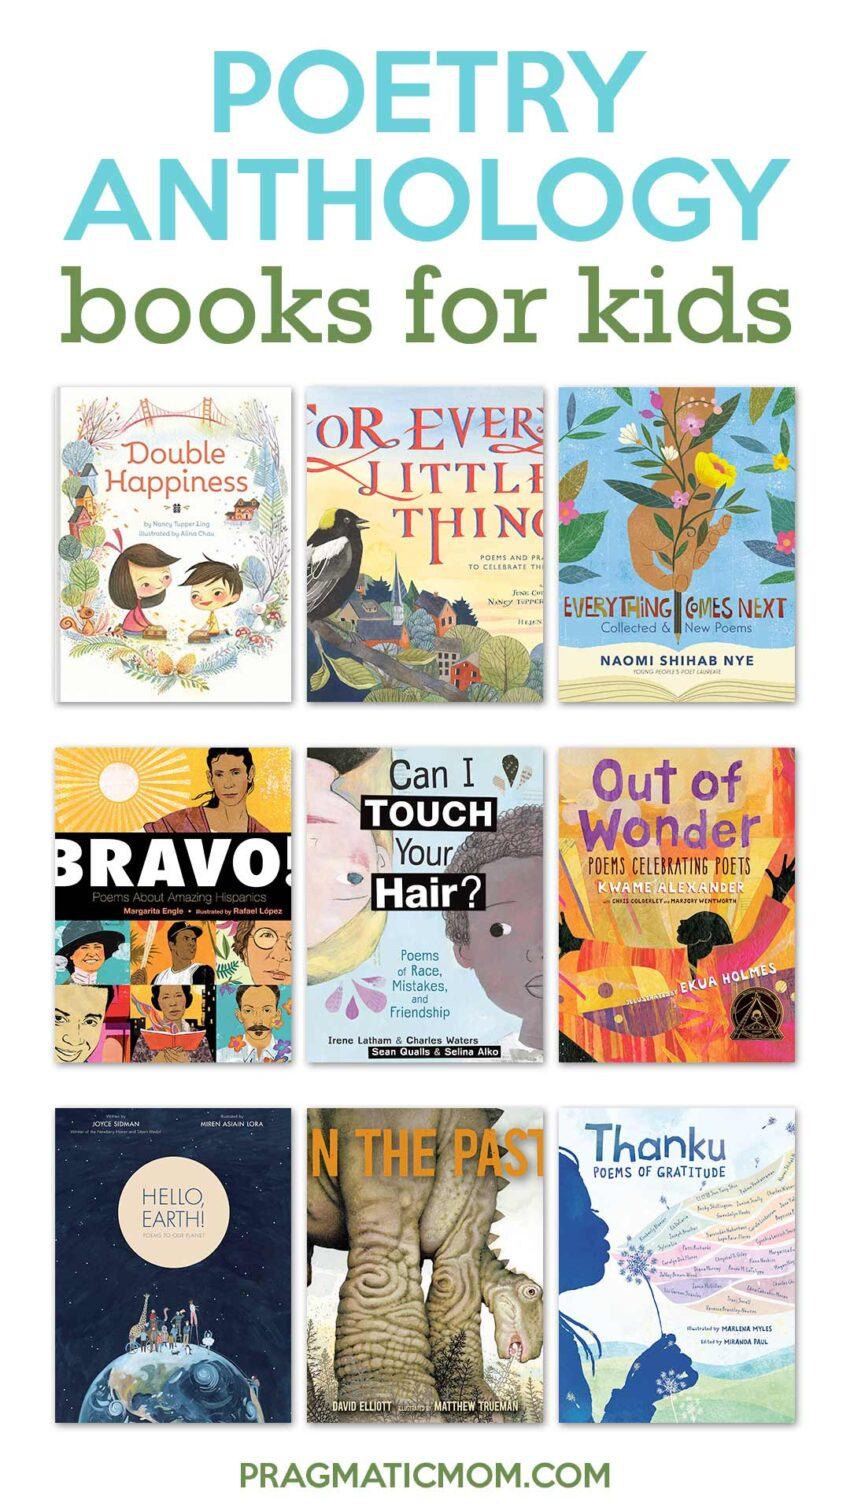 Poetry Anthology Books for Kids